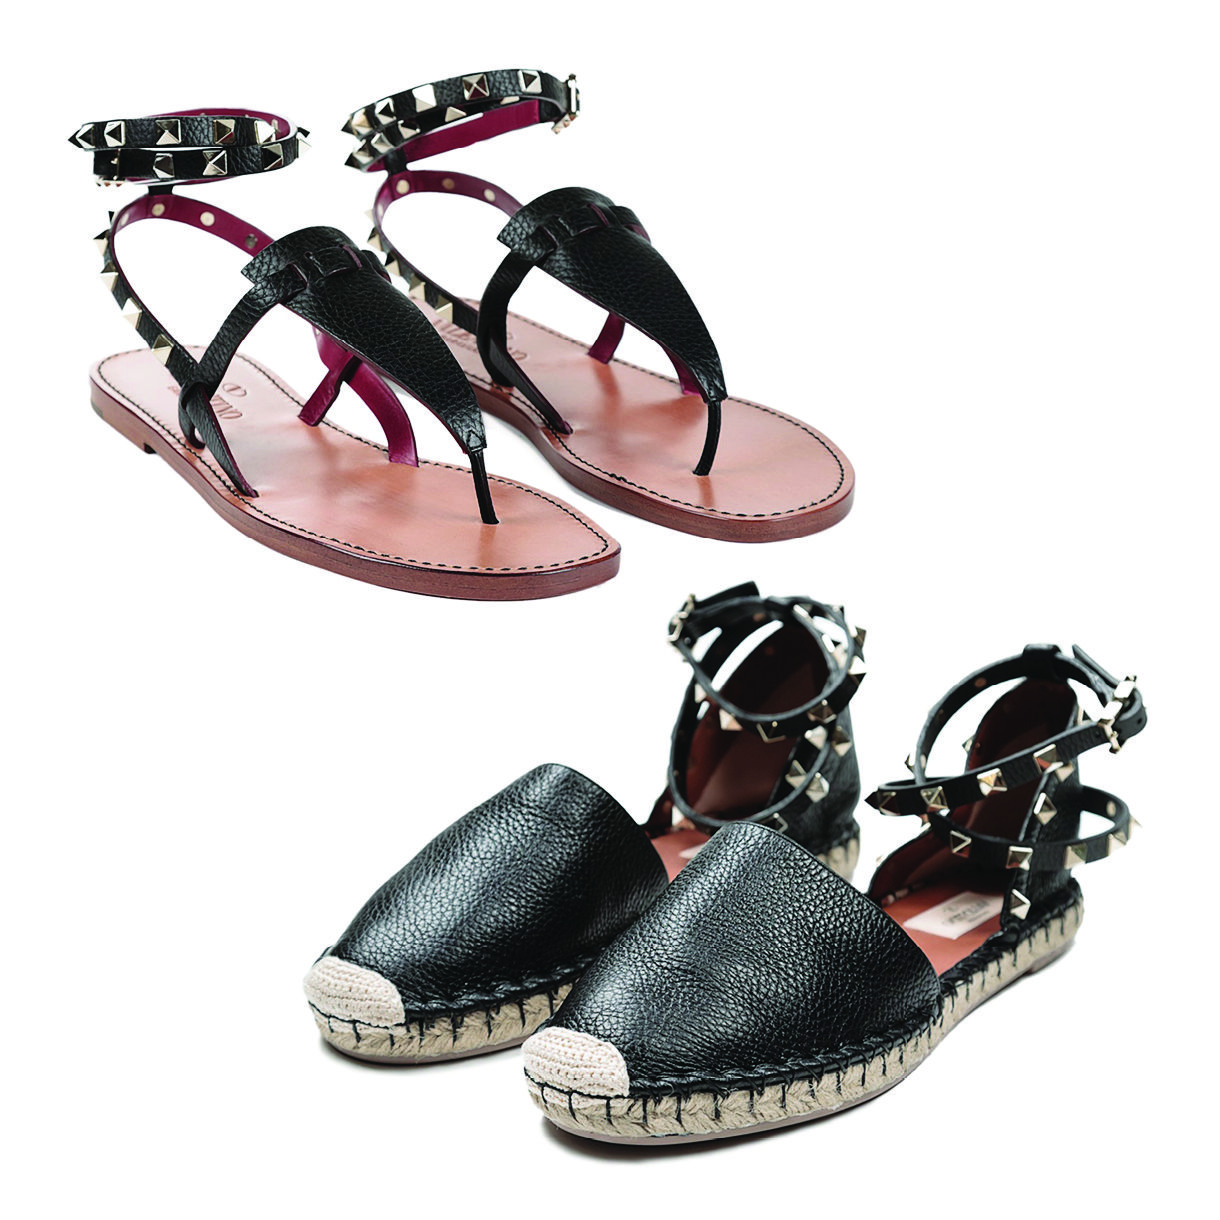 The studded sandals you need for summer - see them here.